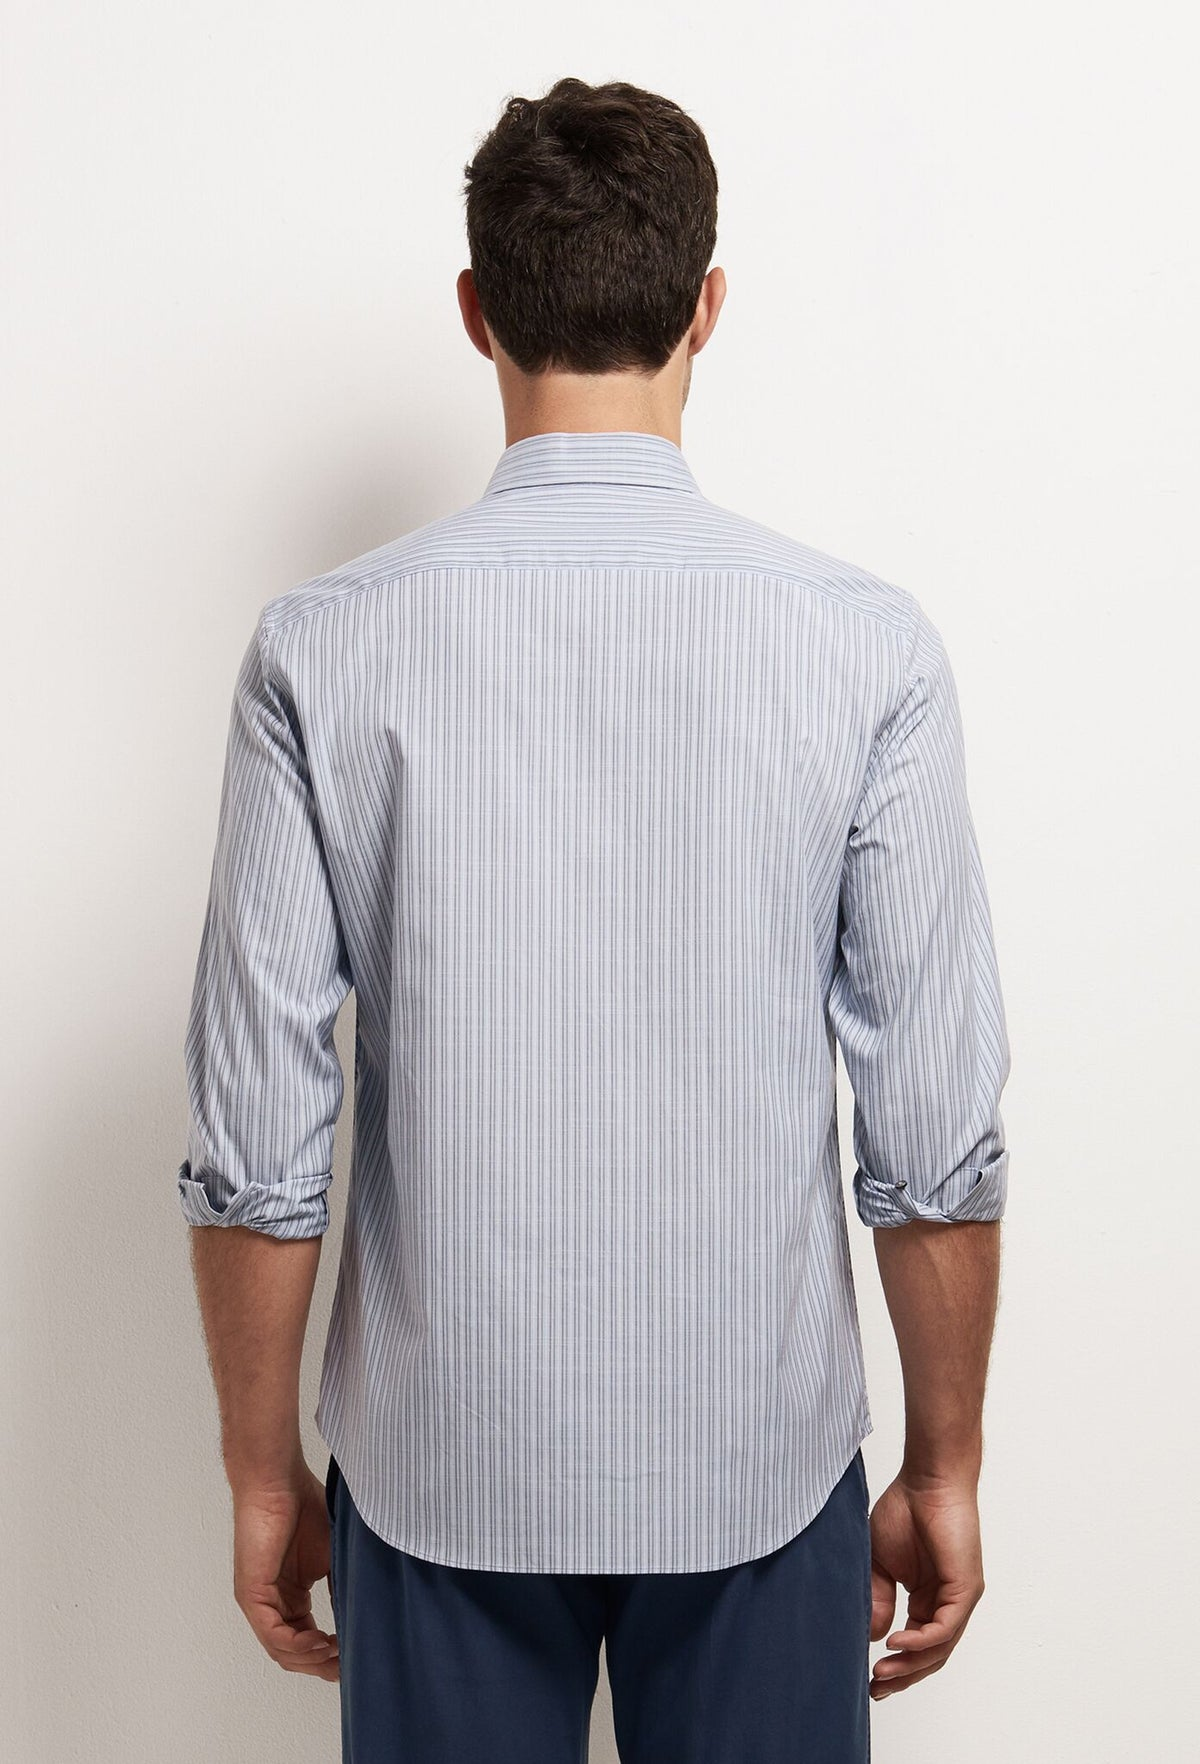 ZACHARY-PRELL-chu-ShirtsModern-Menswear-New-Dress-Code